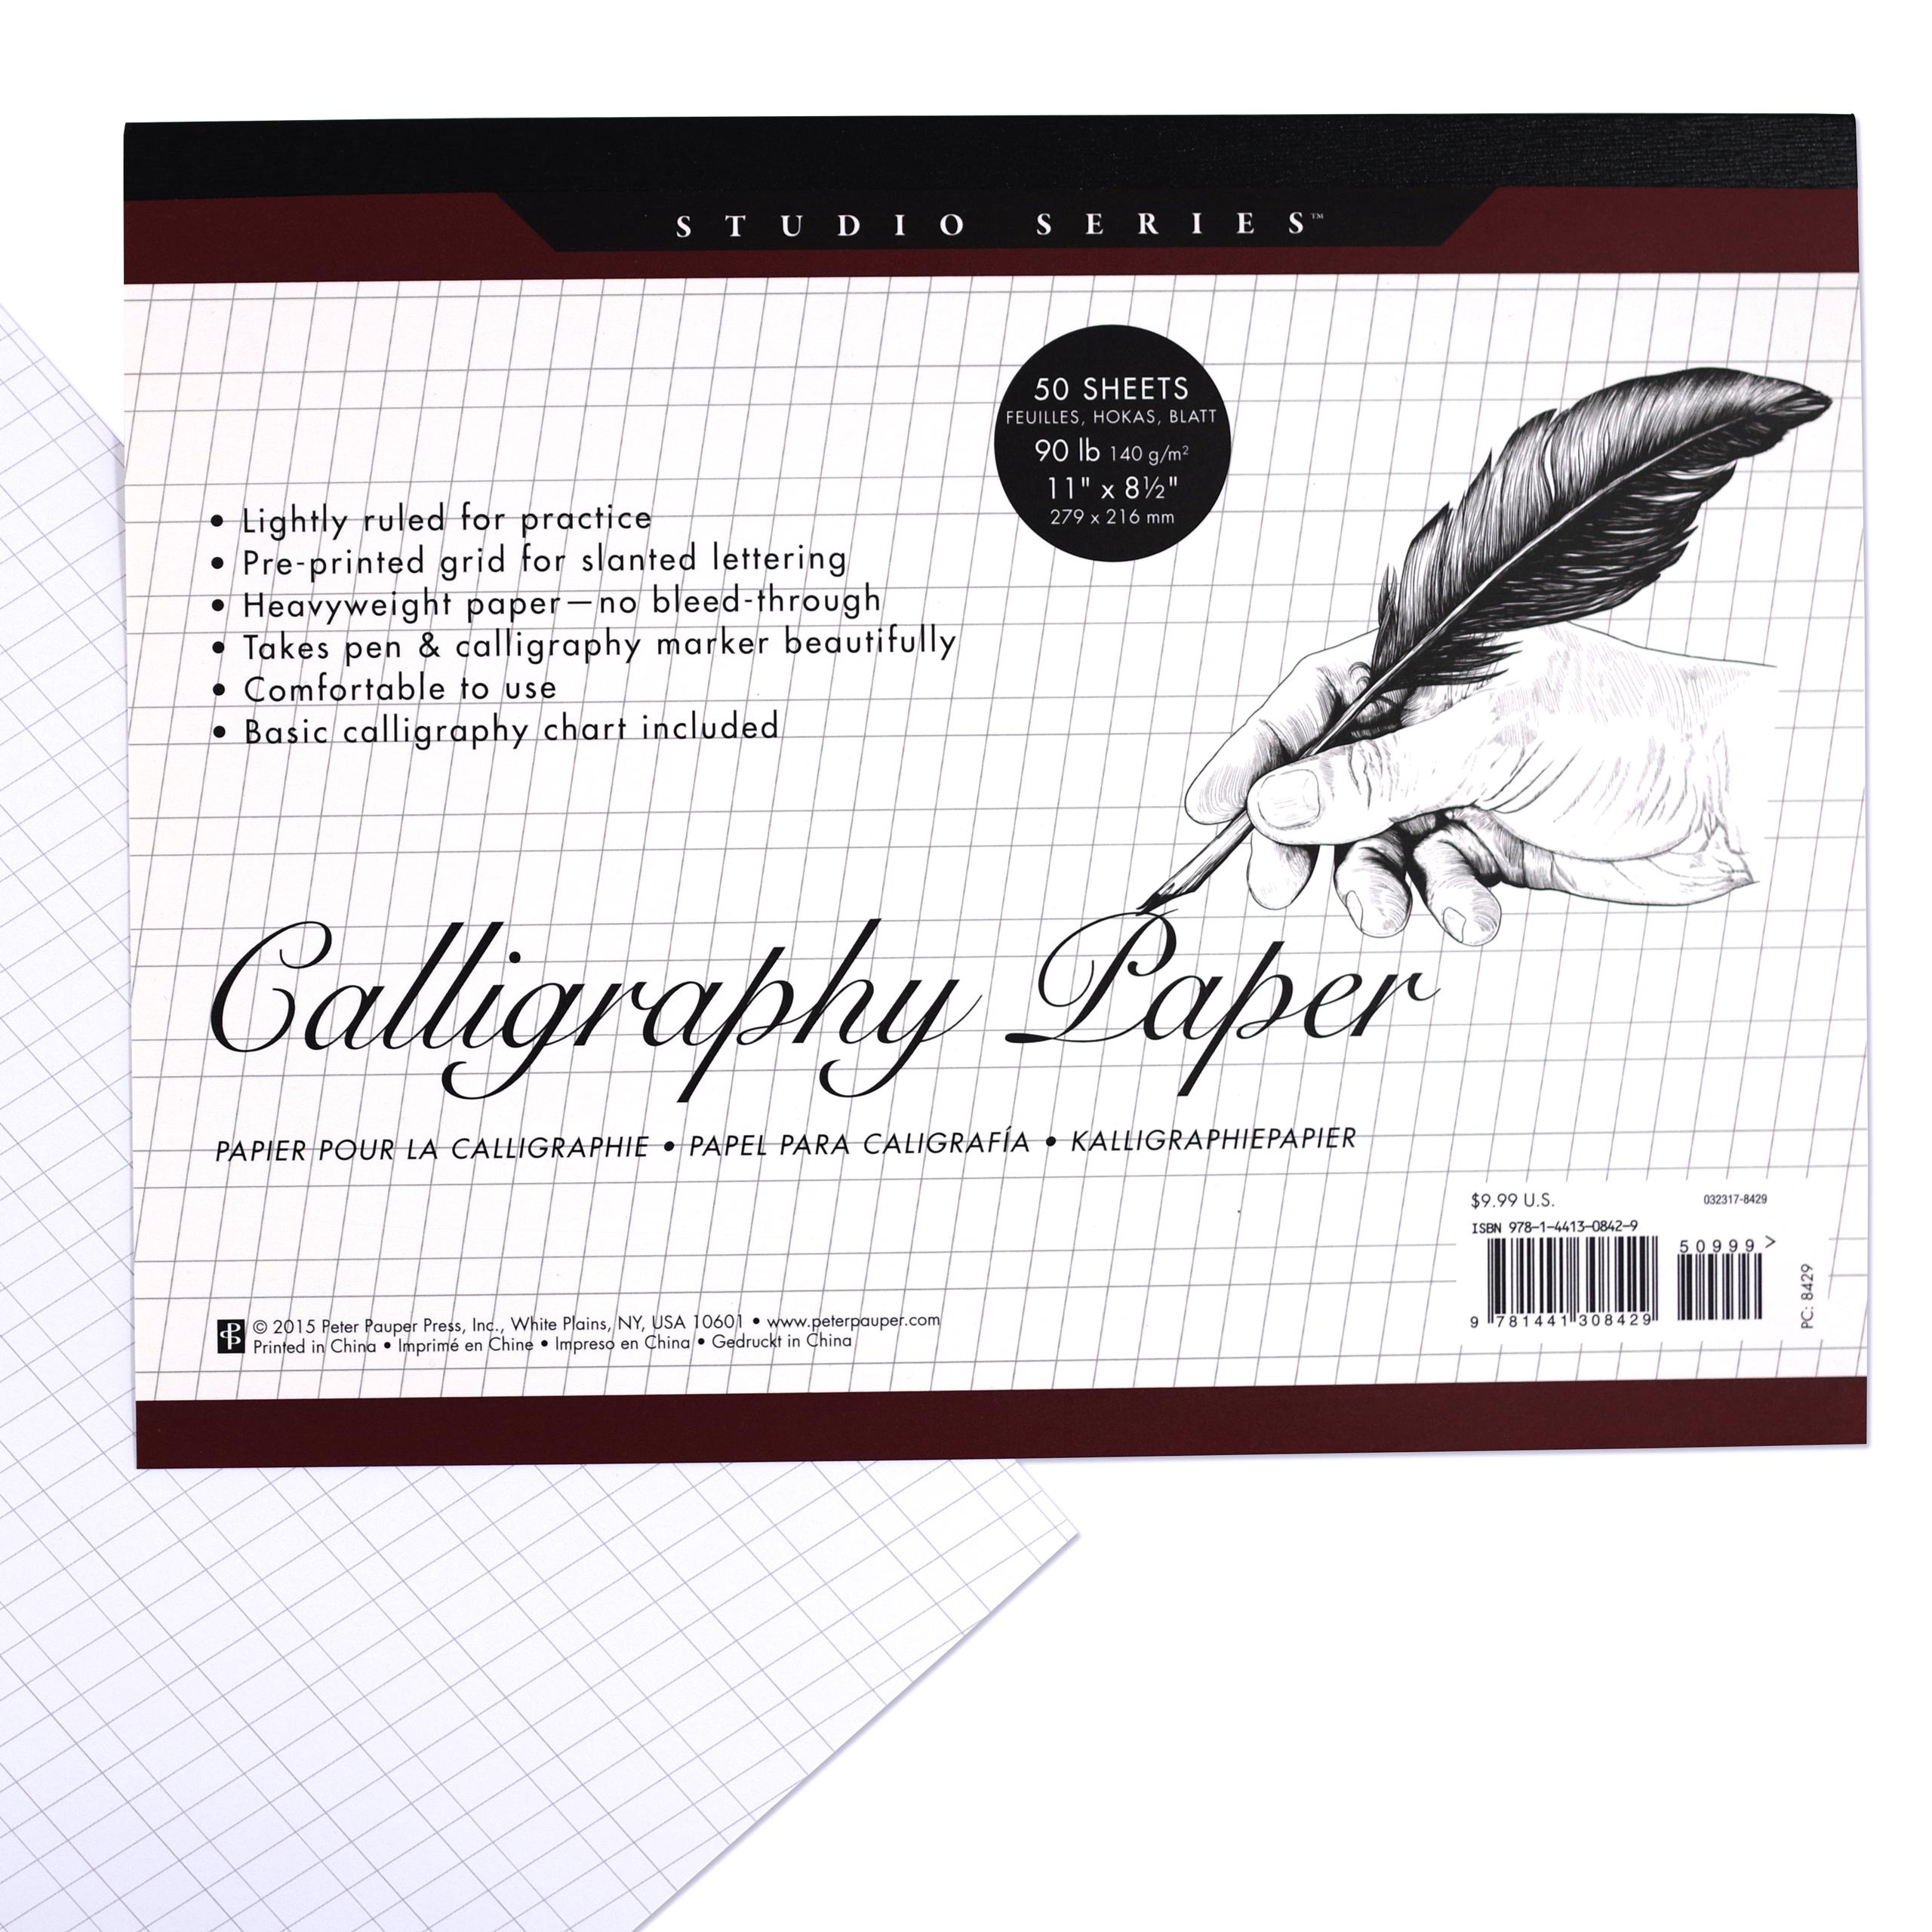 studio series calligraphy paper pad 50 sheets